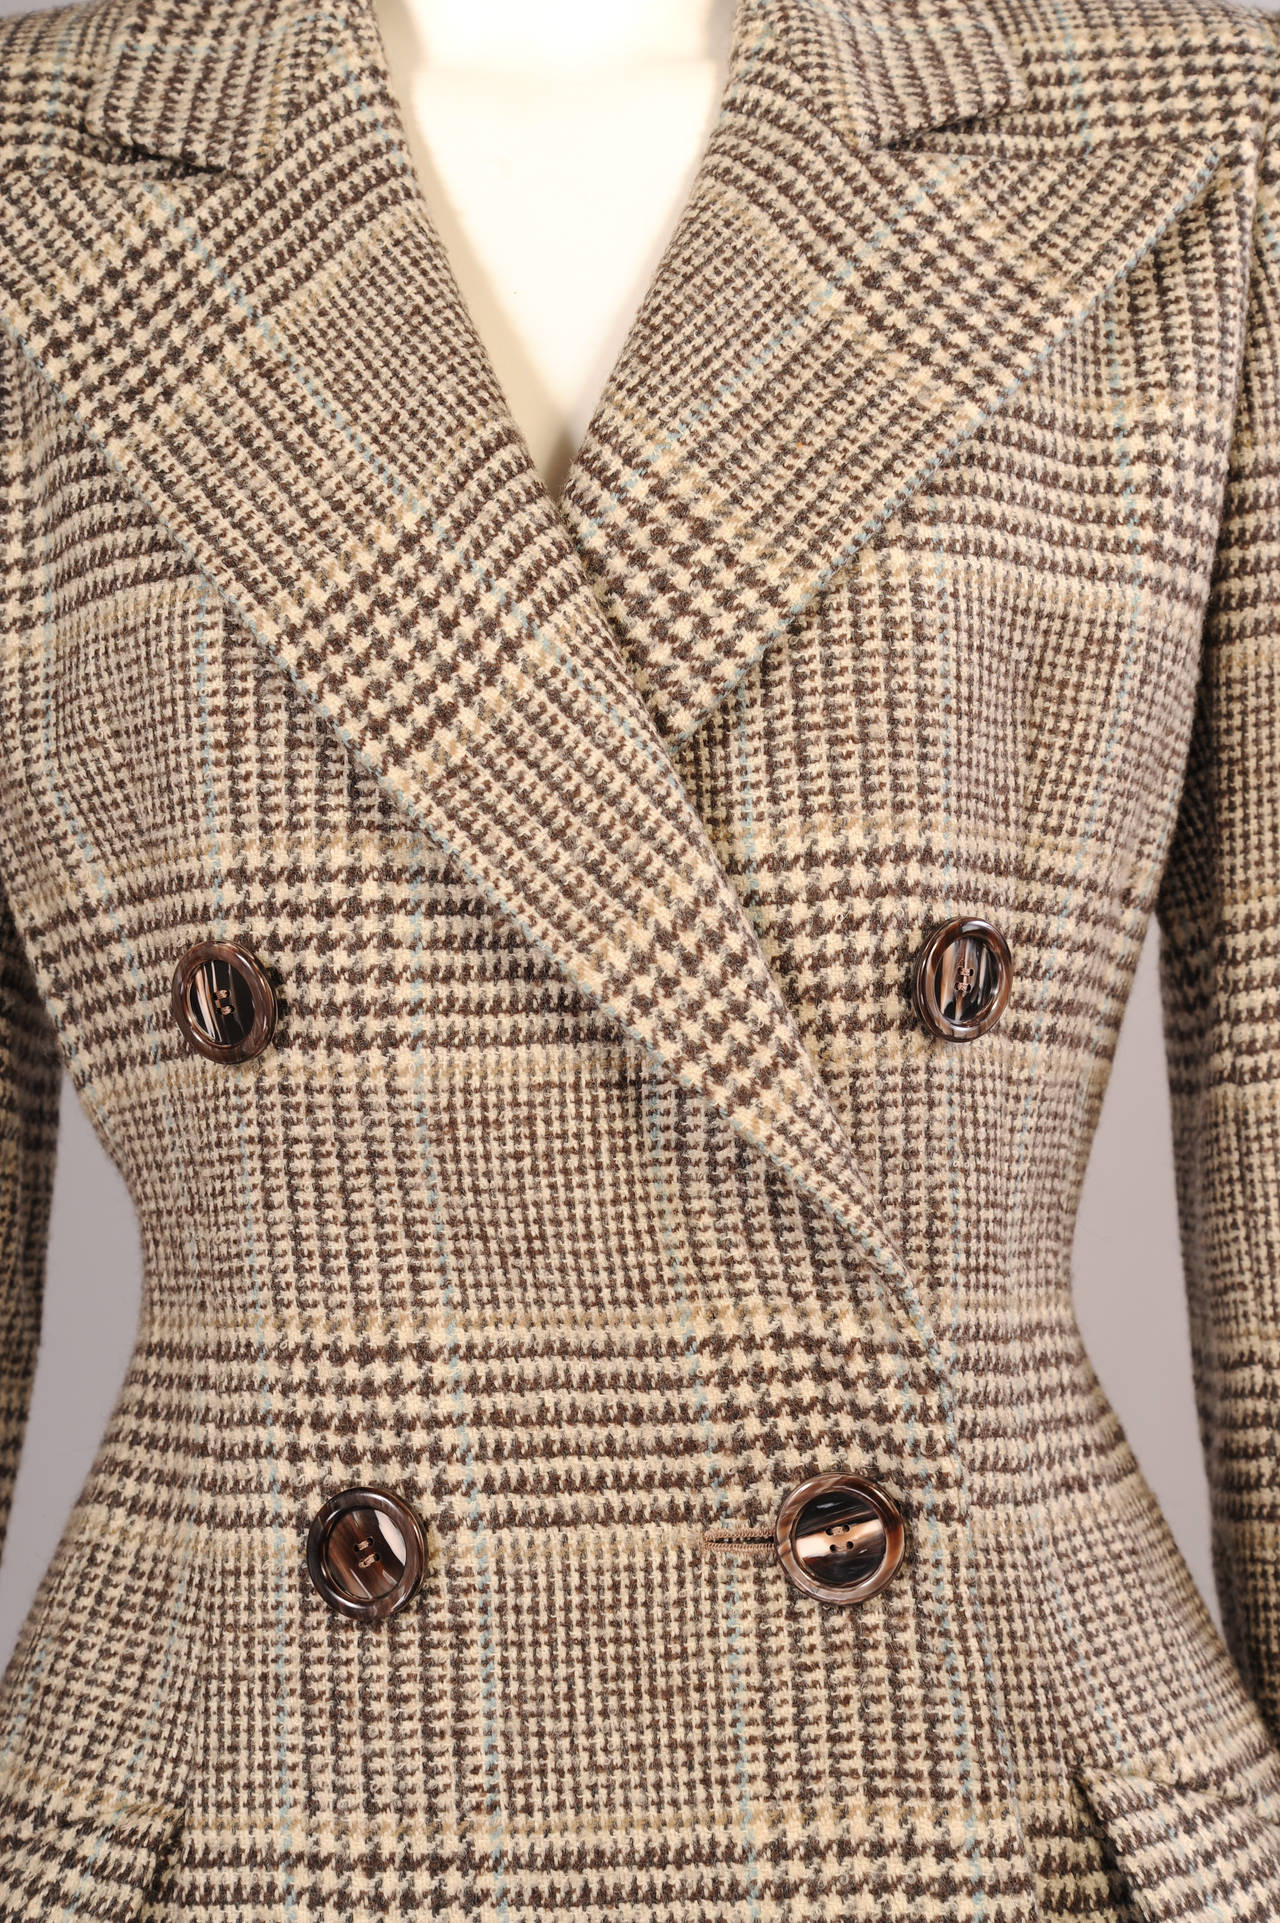 Christian Lacroix has taken a classic menswear look and added a feminine twist with his expert tailoring. Made from a brown and cream wool, the plaid has a faint blue stripe running through it. The jacket is fully lined and it is in excellent